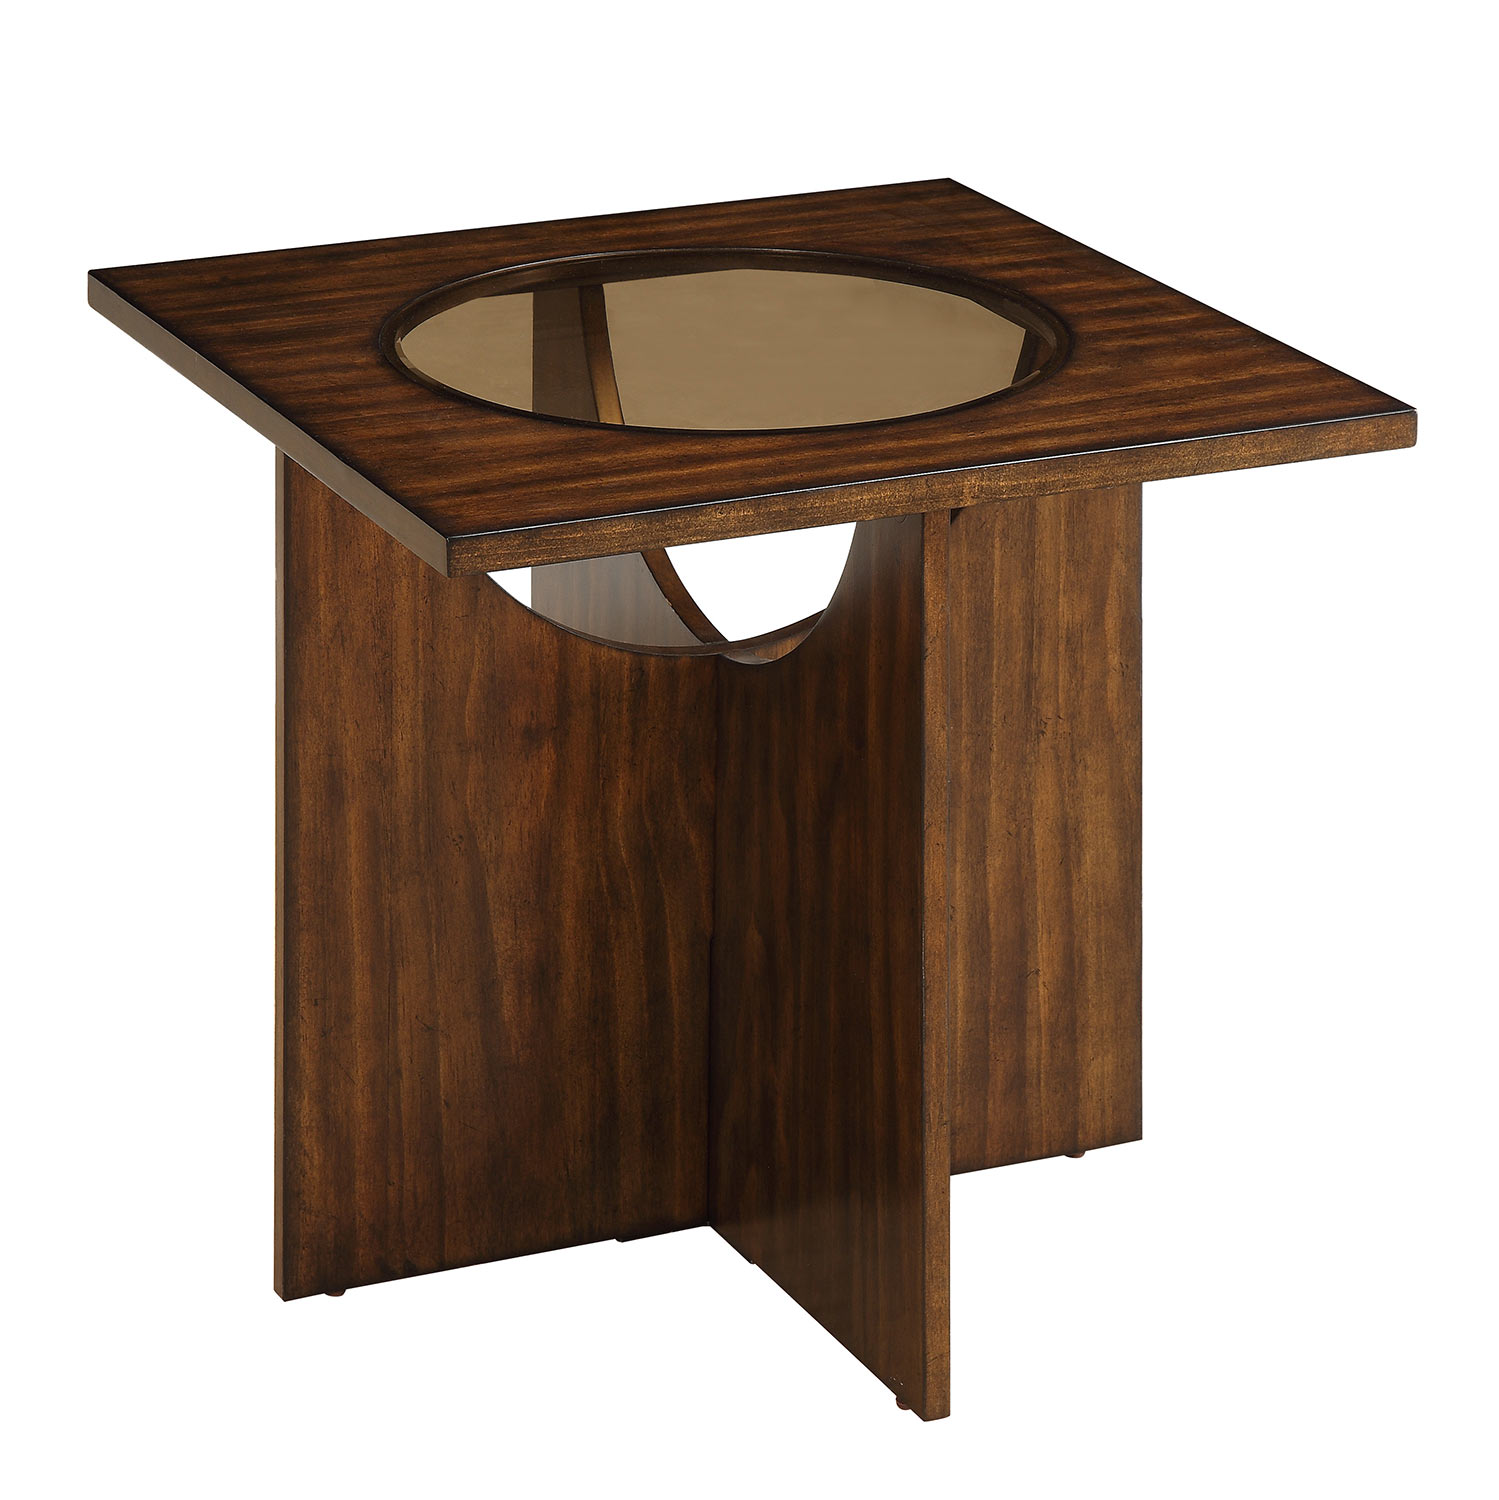 Homelegance Akita End Table - Cherry